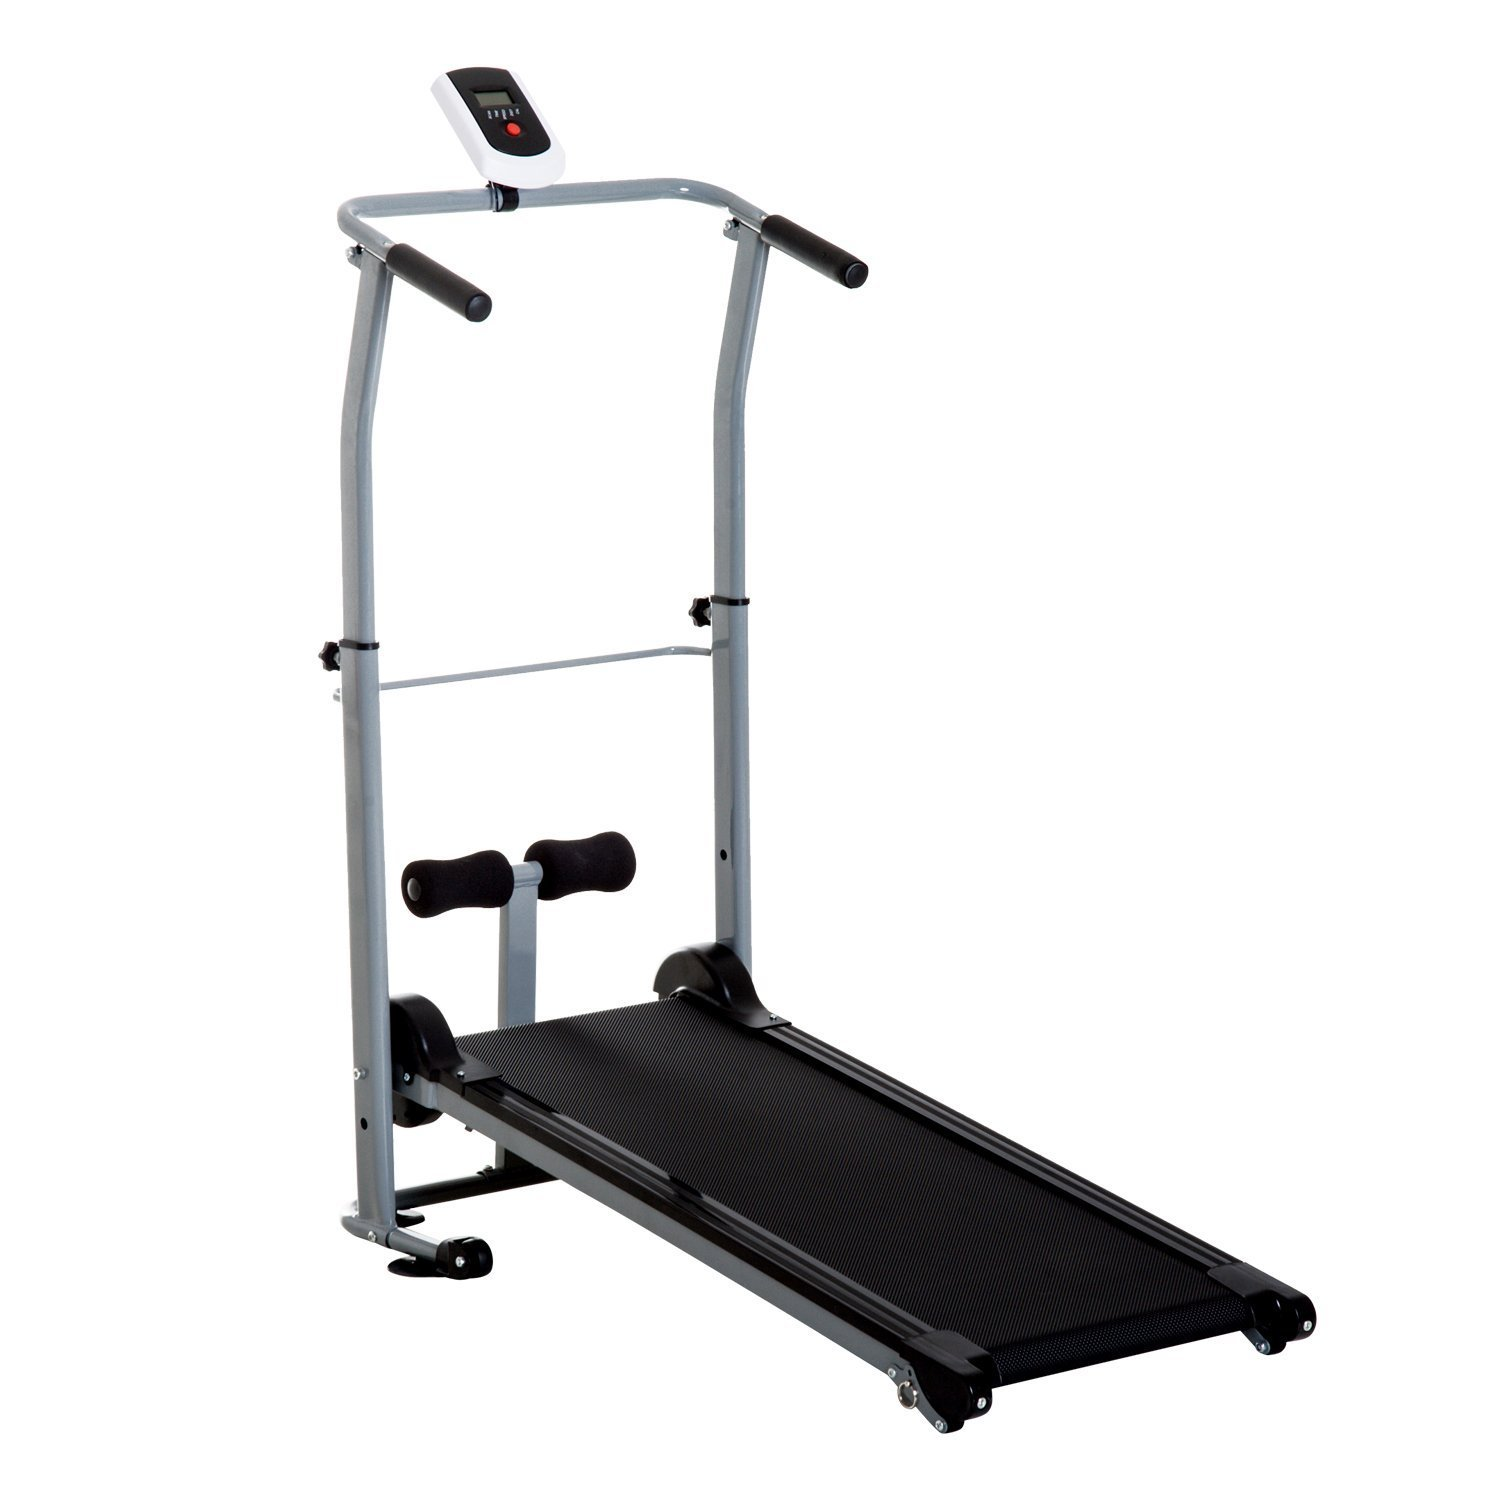 Soozier Folding 2-in-1 Manual Walking Incline Treadmill and Sit Up Exercise Machine by Soozier (Image #1)